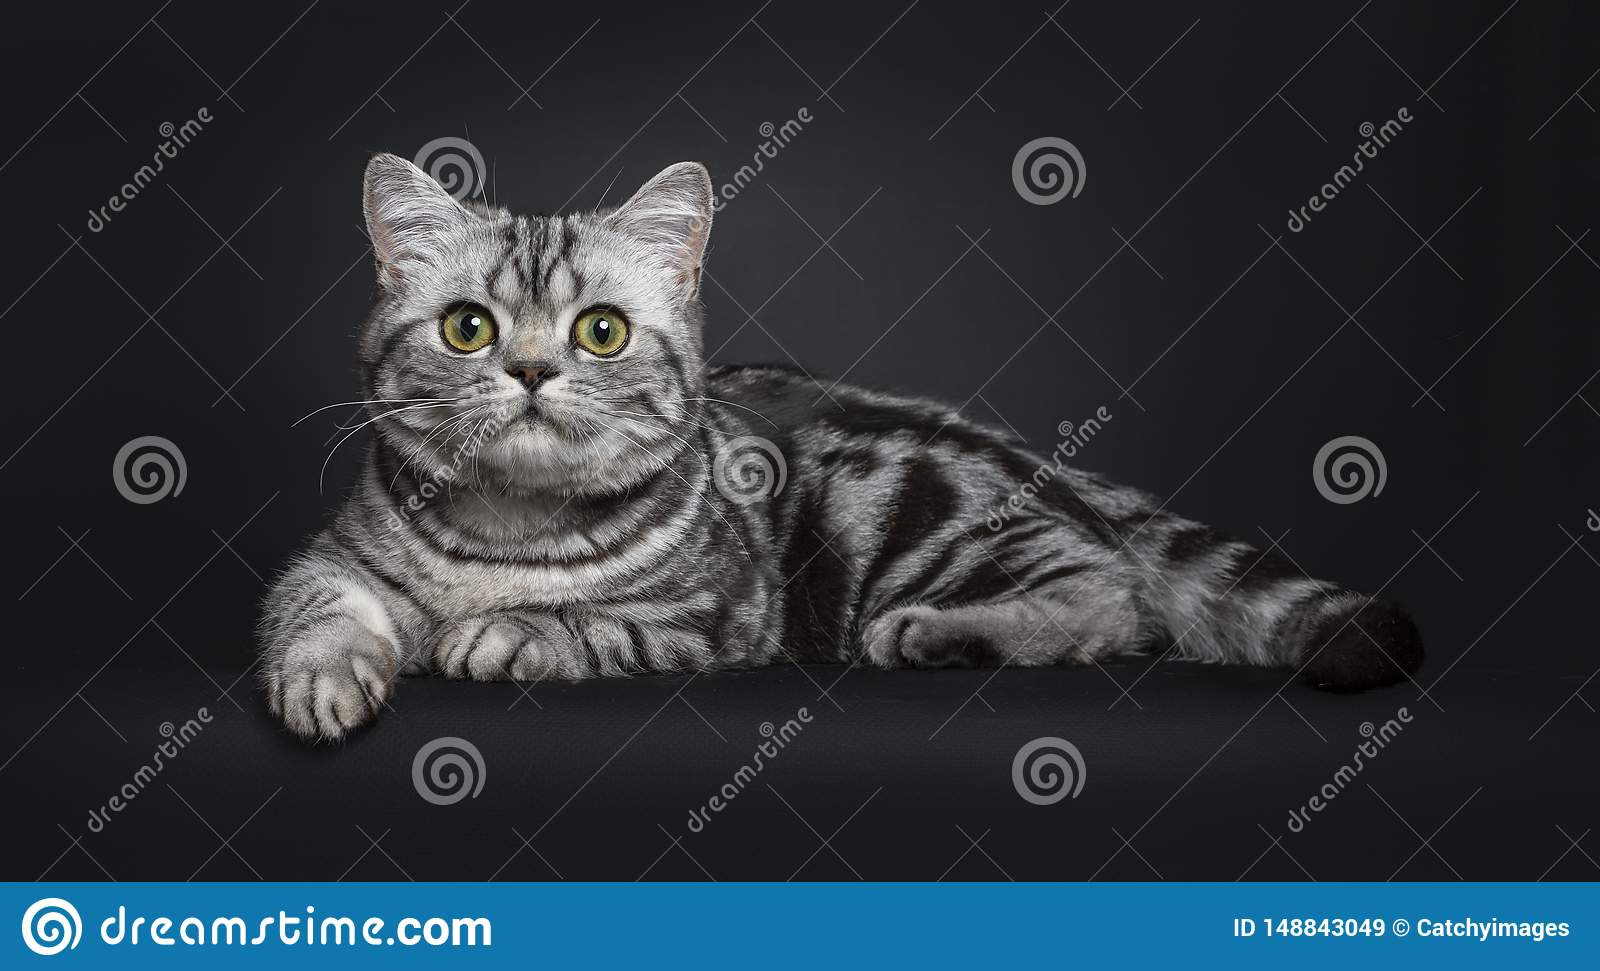 Cute Black Silver British Shorthair Kitten On Black Stock Image Image Of Quality Isolated 148843049